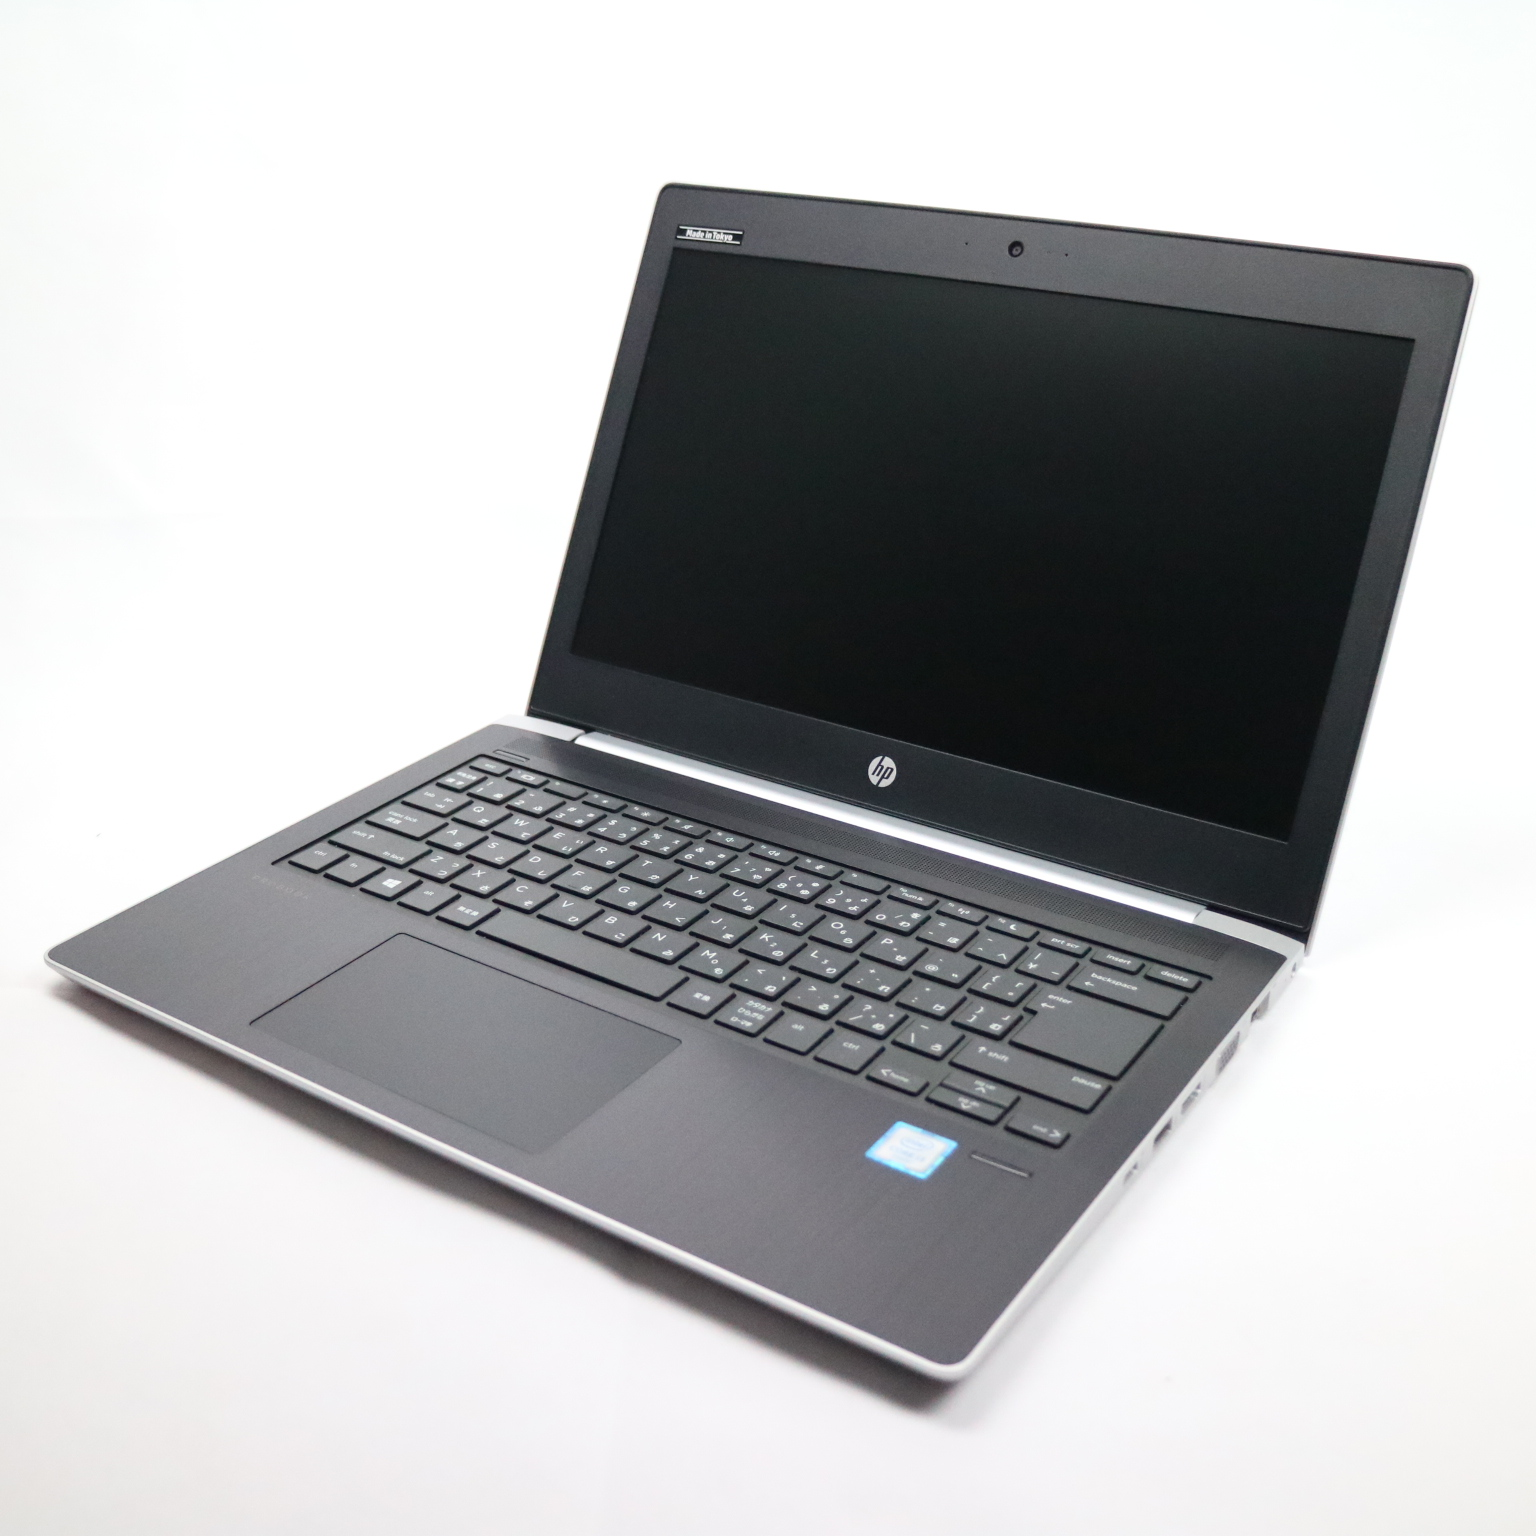 【Windows10】Probook 430 G5/ 13.3インチ/ Core i3-7020U/ 2.3GHz/ 4GB/ HDD 500GB